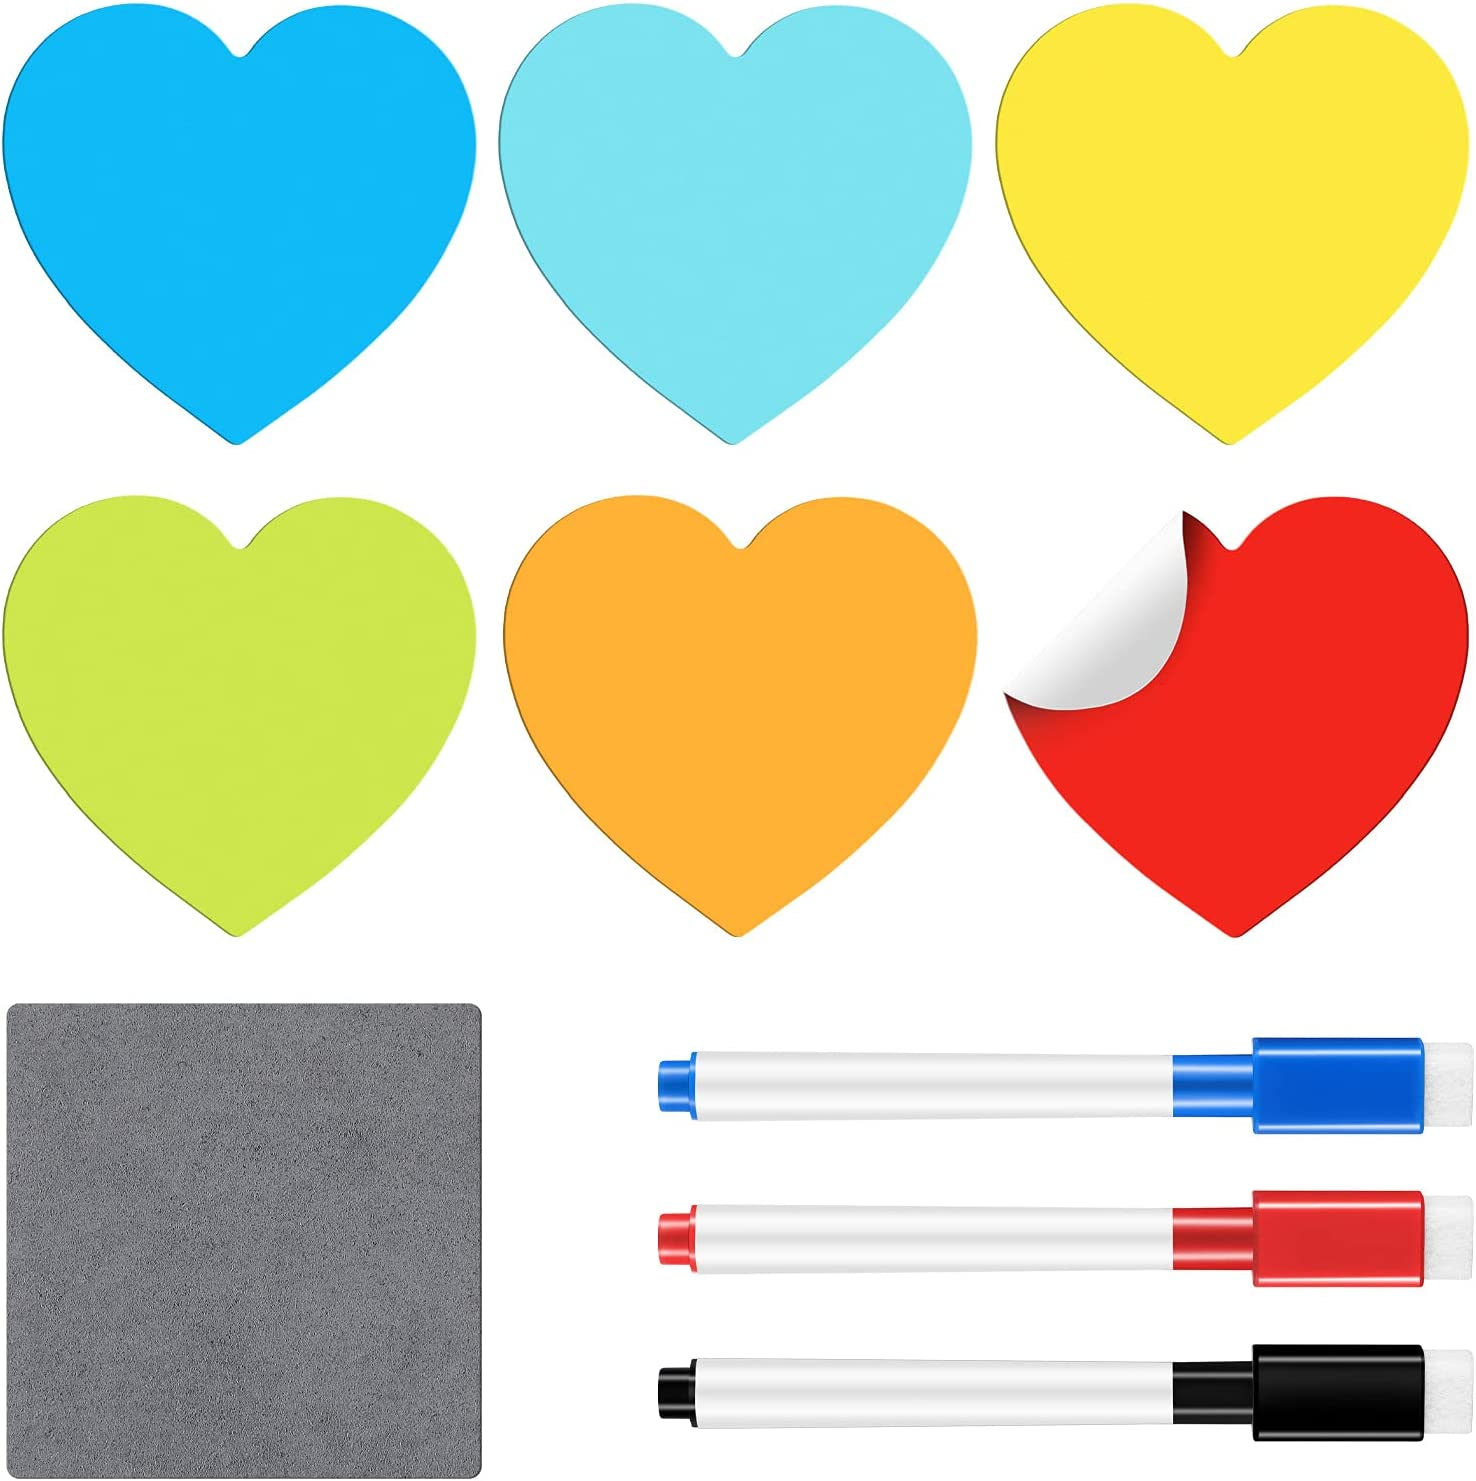 6 Pieces Reusable Dry Erase Sticky Notes Colorful Reusable Heart Whiteboard Labels Stickers 3 Pieces Erasable Fine Tip Markers with Erasers and a Small Wipe Cloth for Home Office Classroom 4 x 4 Inch